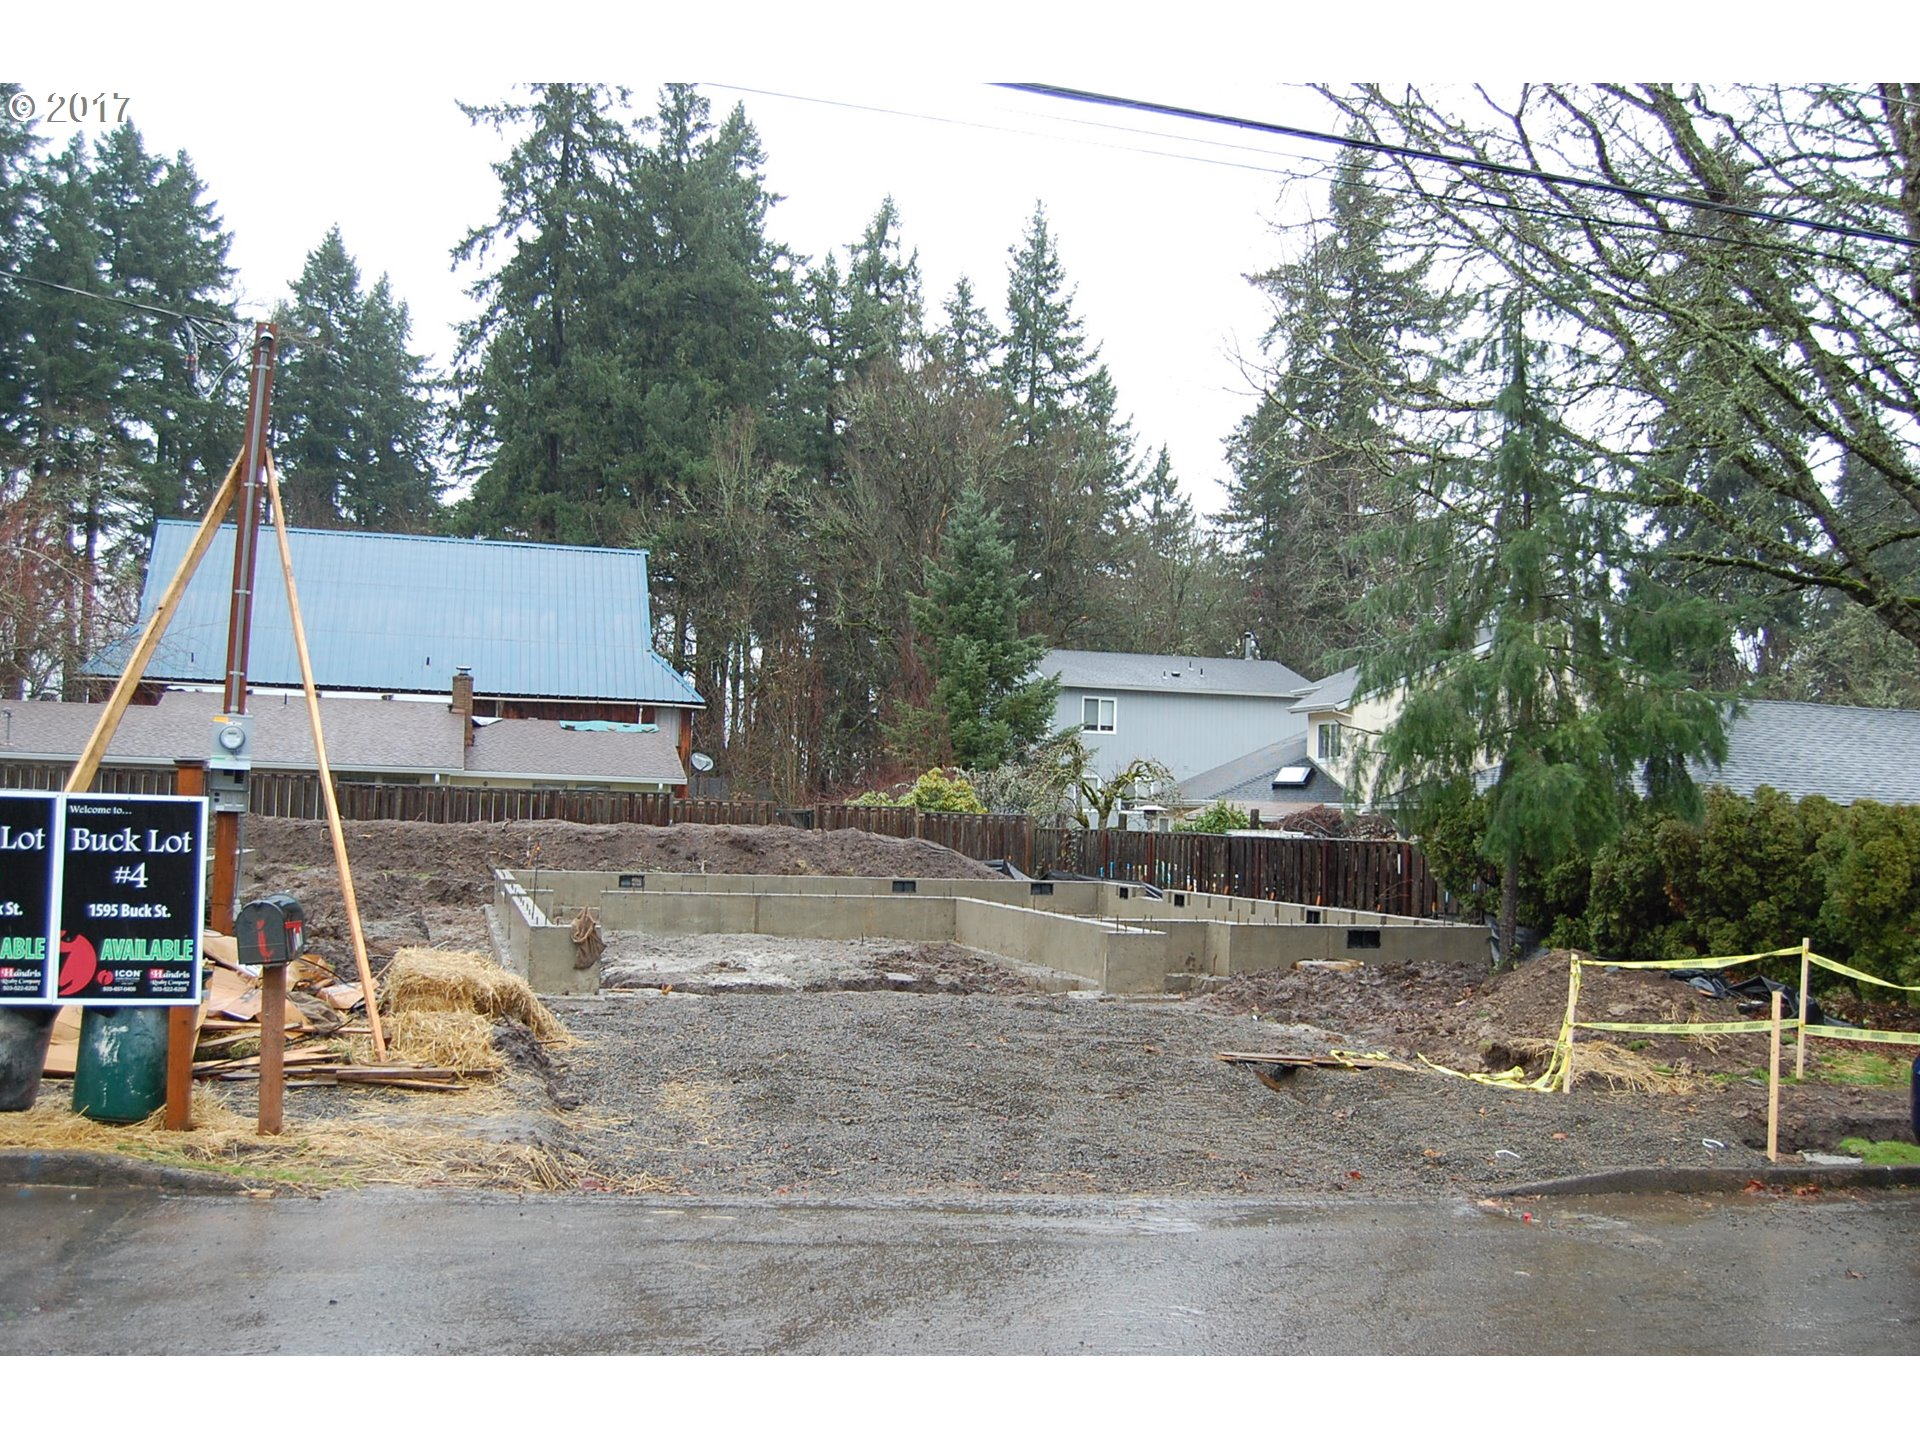 1595 Buck ST Lot4, West Linn, OR 97068